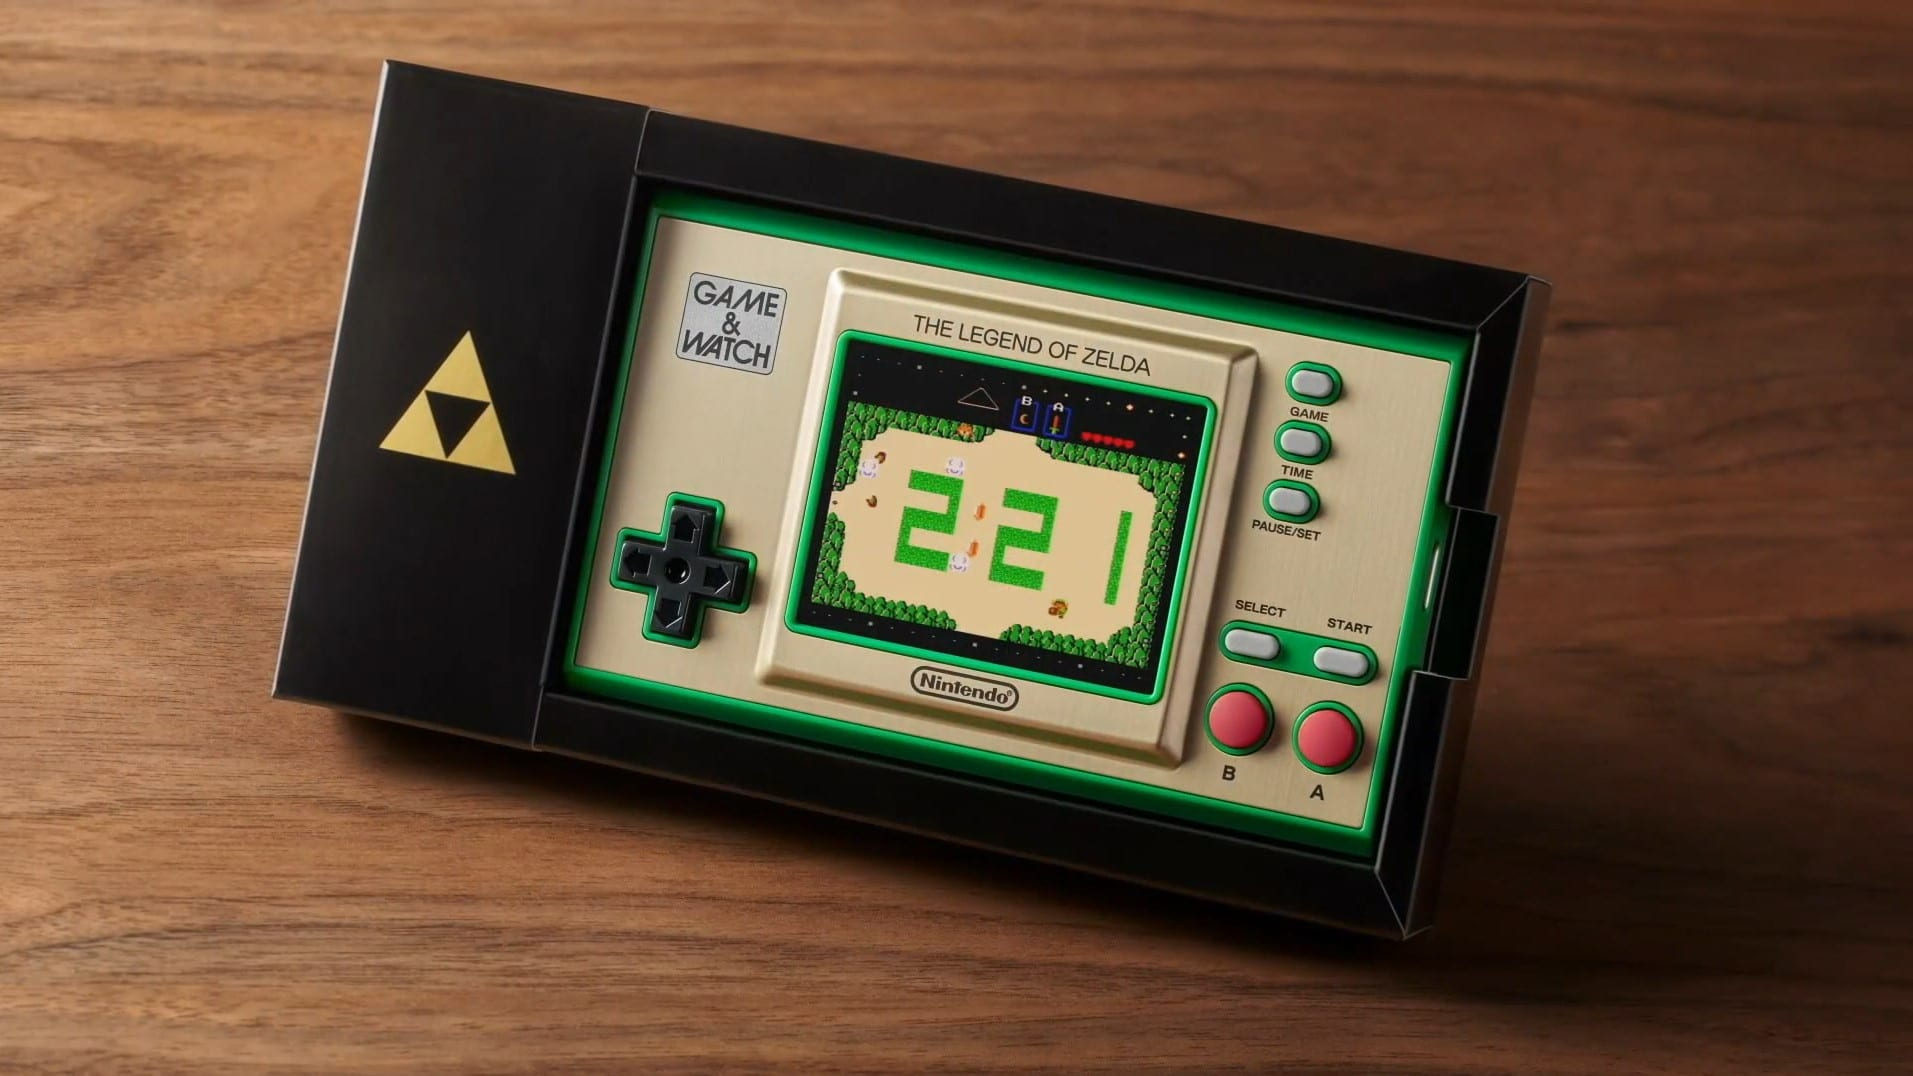 The Legend of Zelda Game & Watch Console Is Better Than Mario's